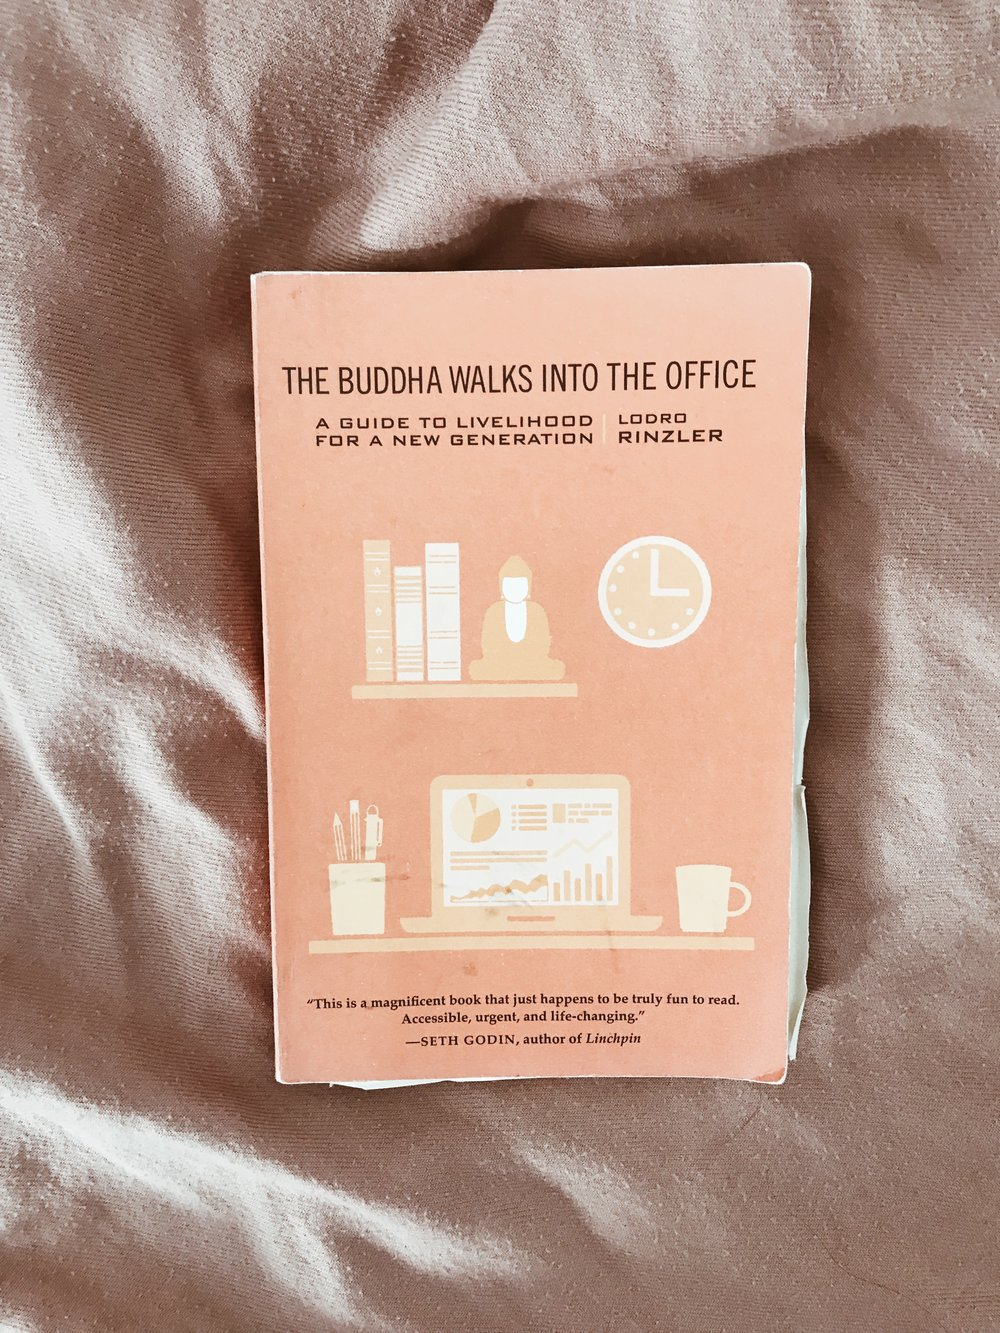 The Buddha Walks into the Office - by Lodro Rinzler, Link to Product